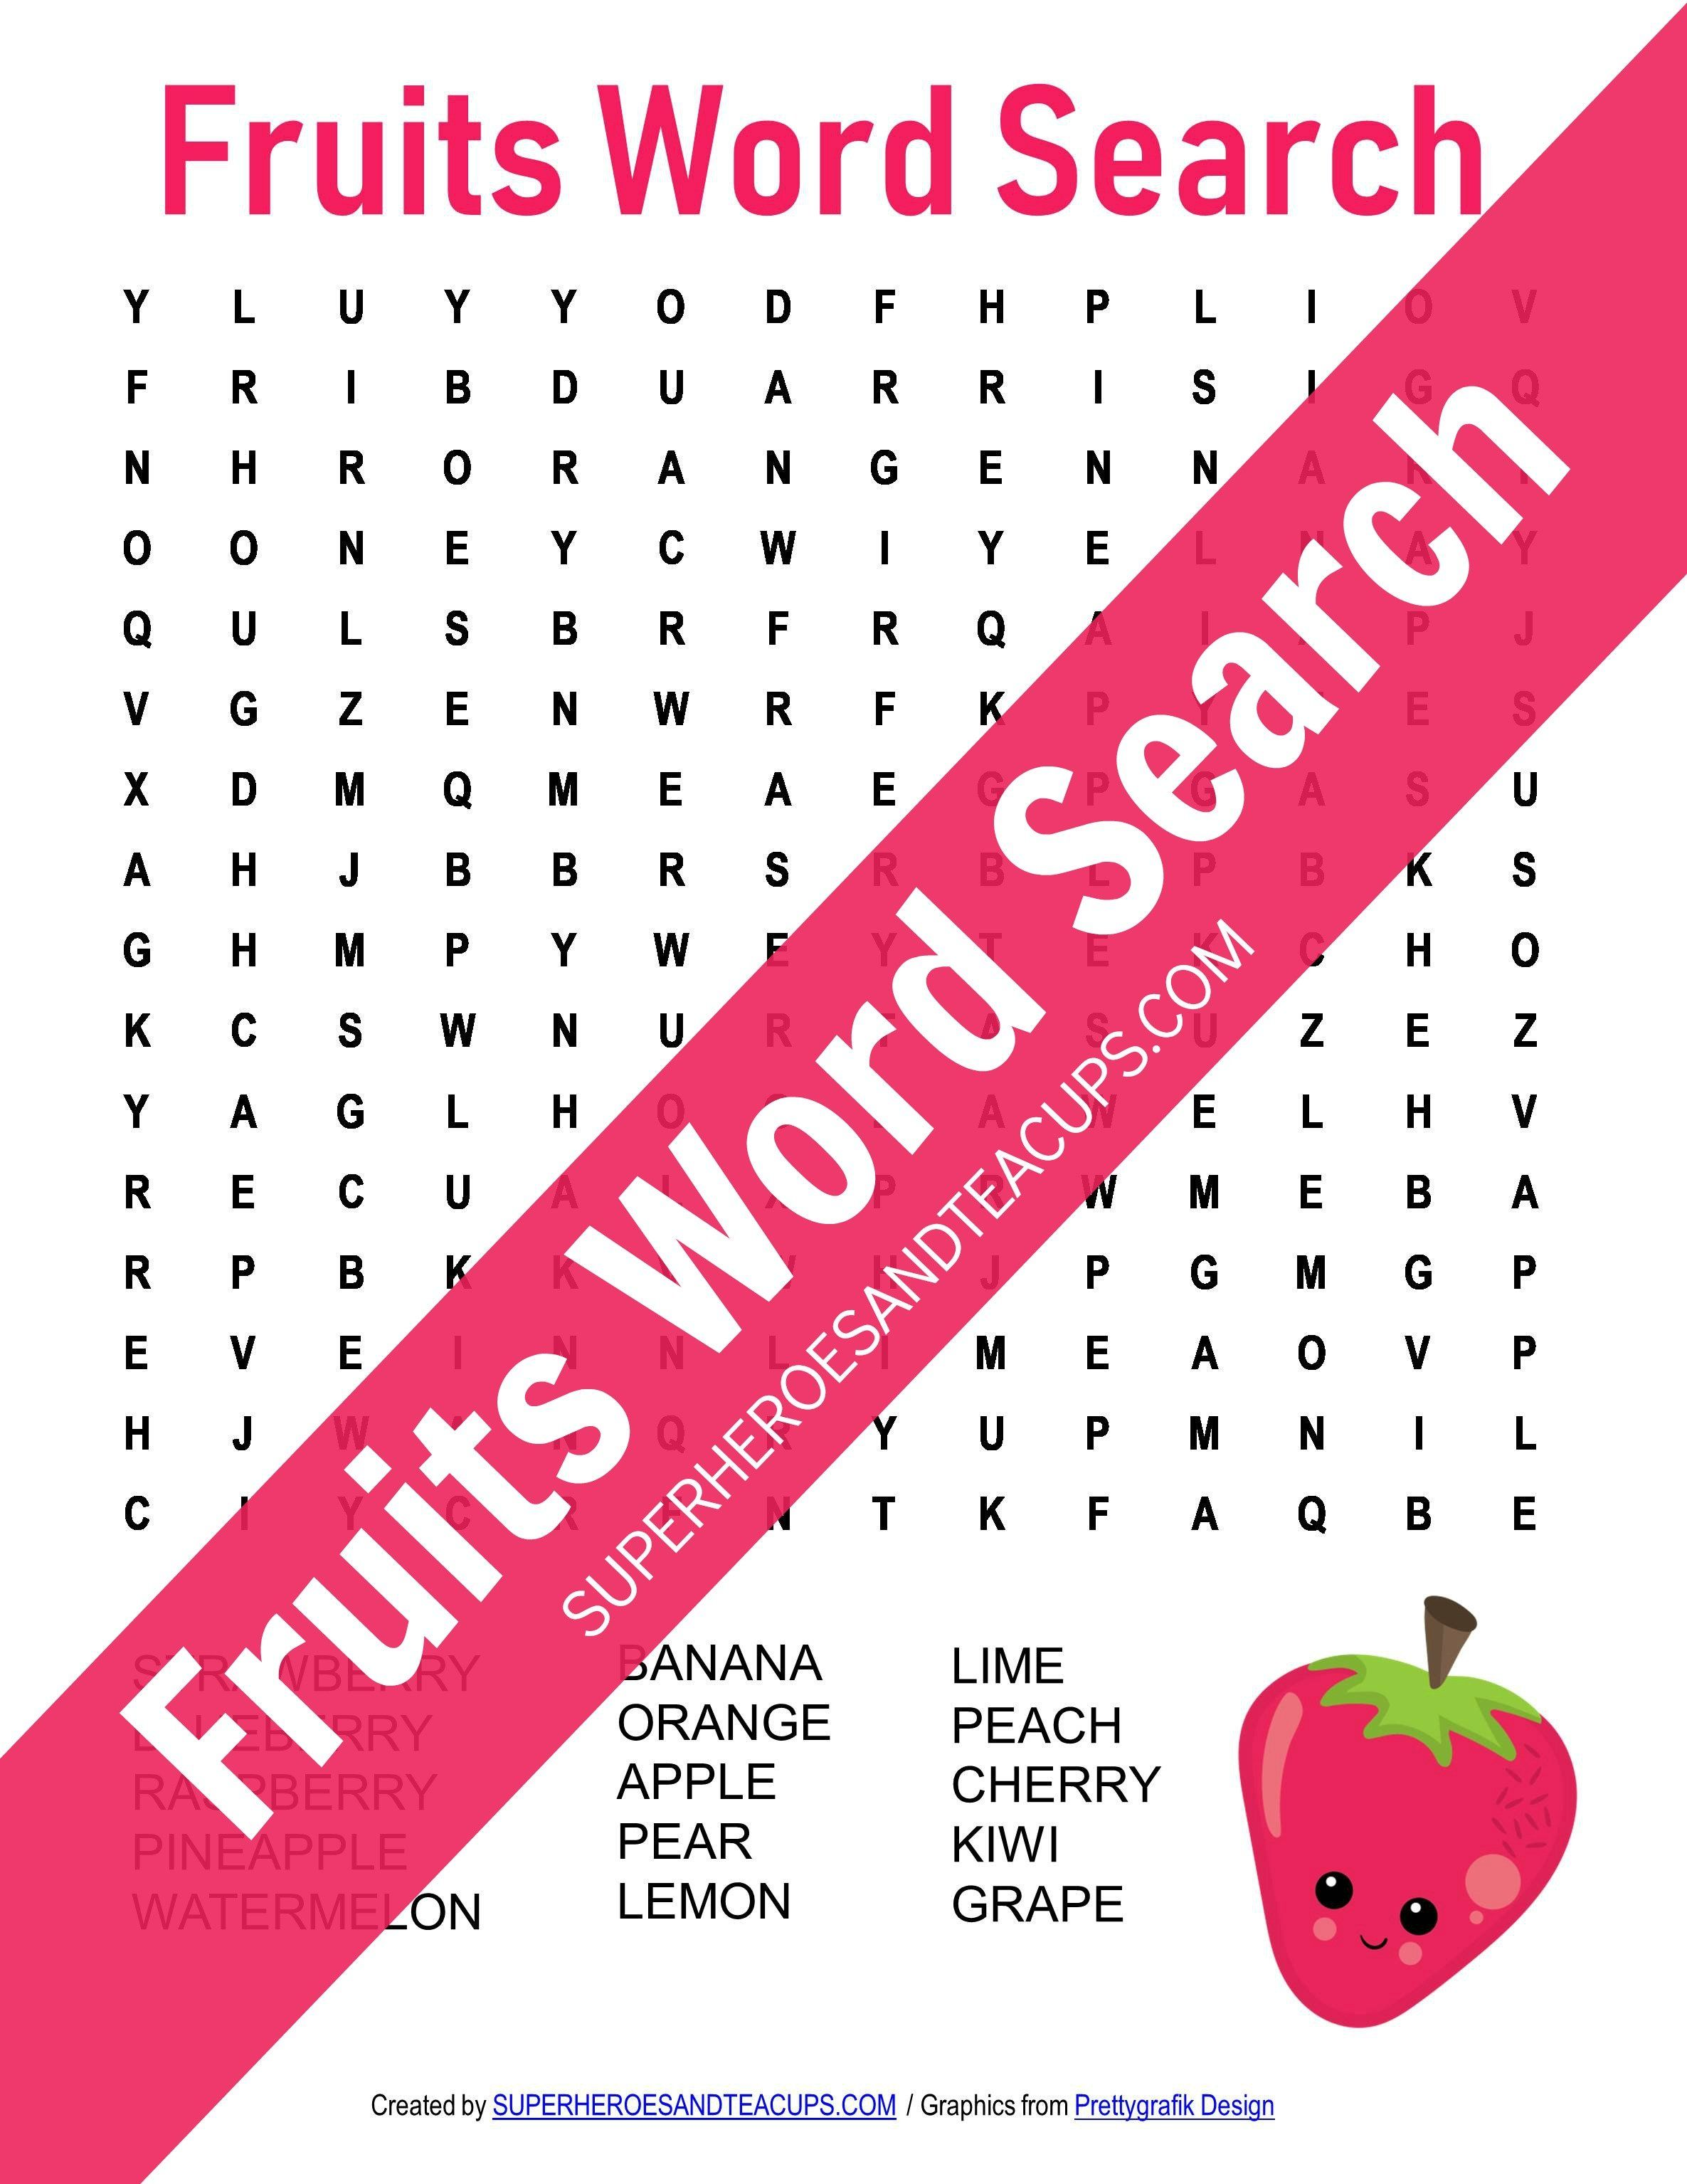 Fruits Word Search Free Printable For Kids